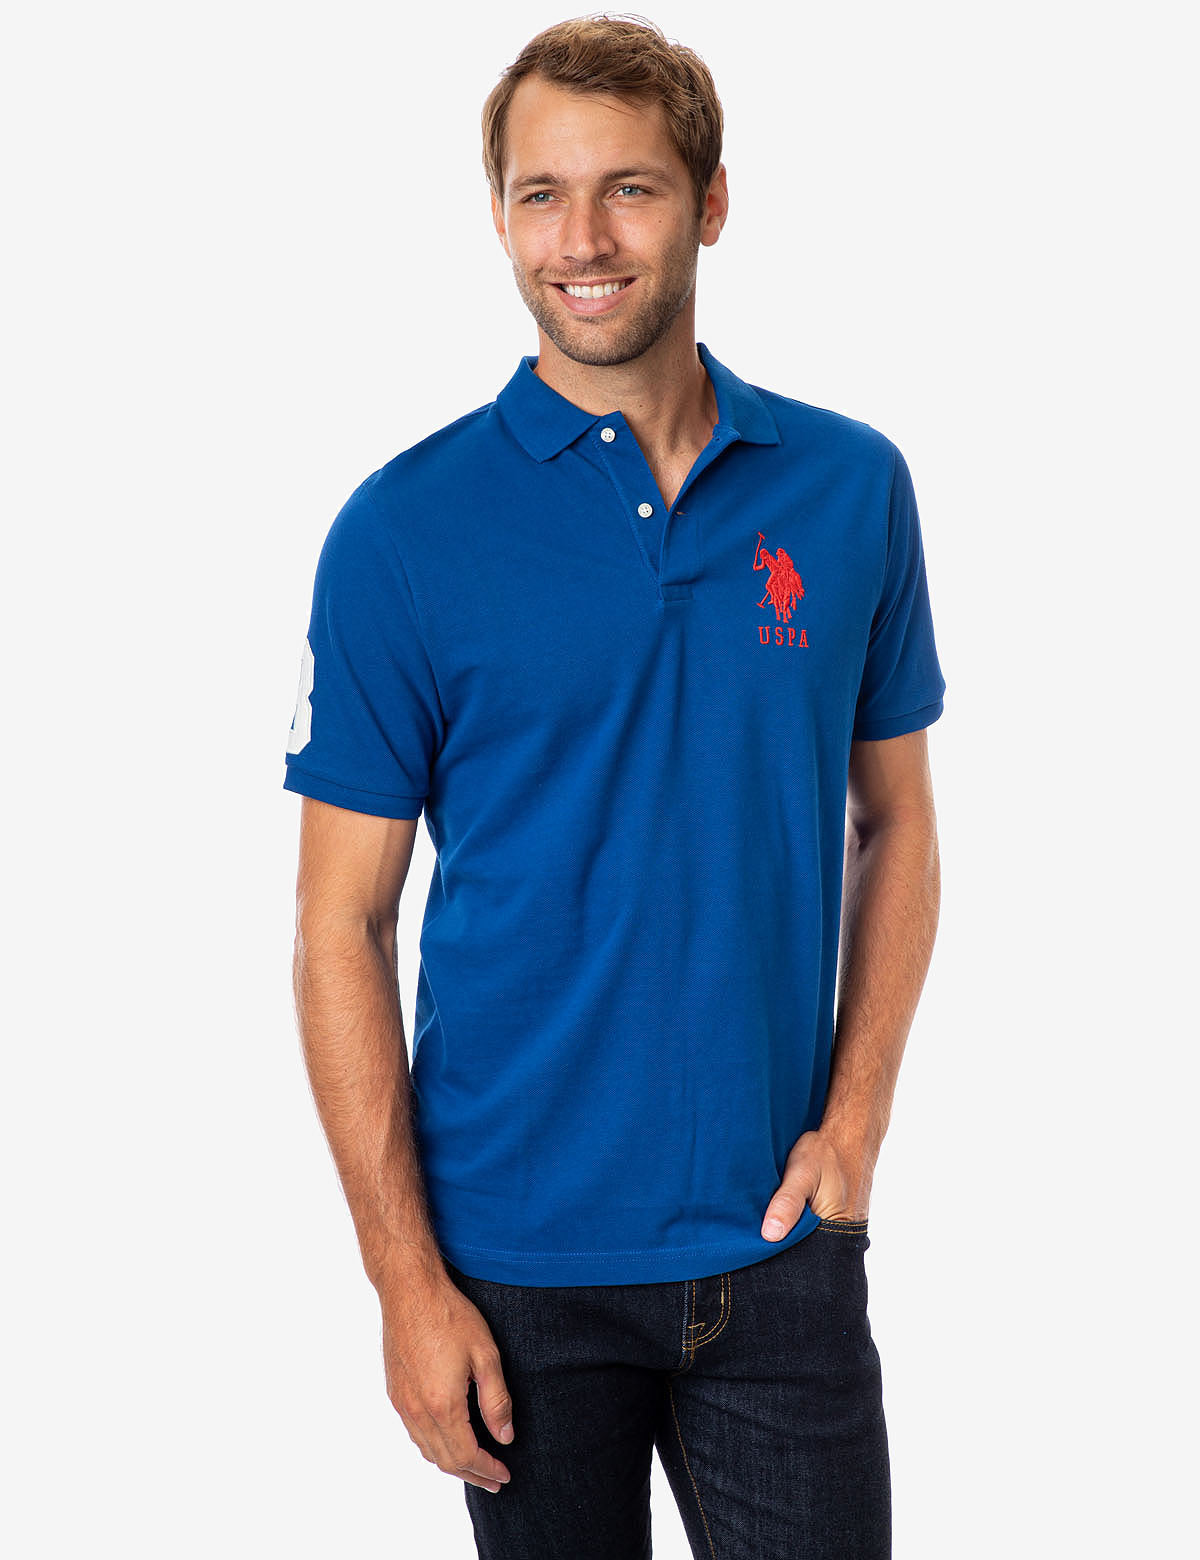 BIG LOGO POLO SHIRT - U.S. Polo Assn.